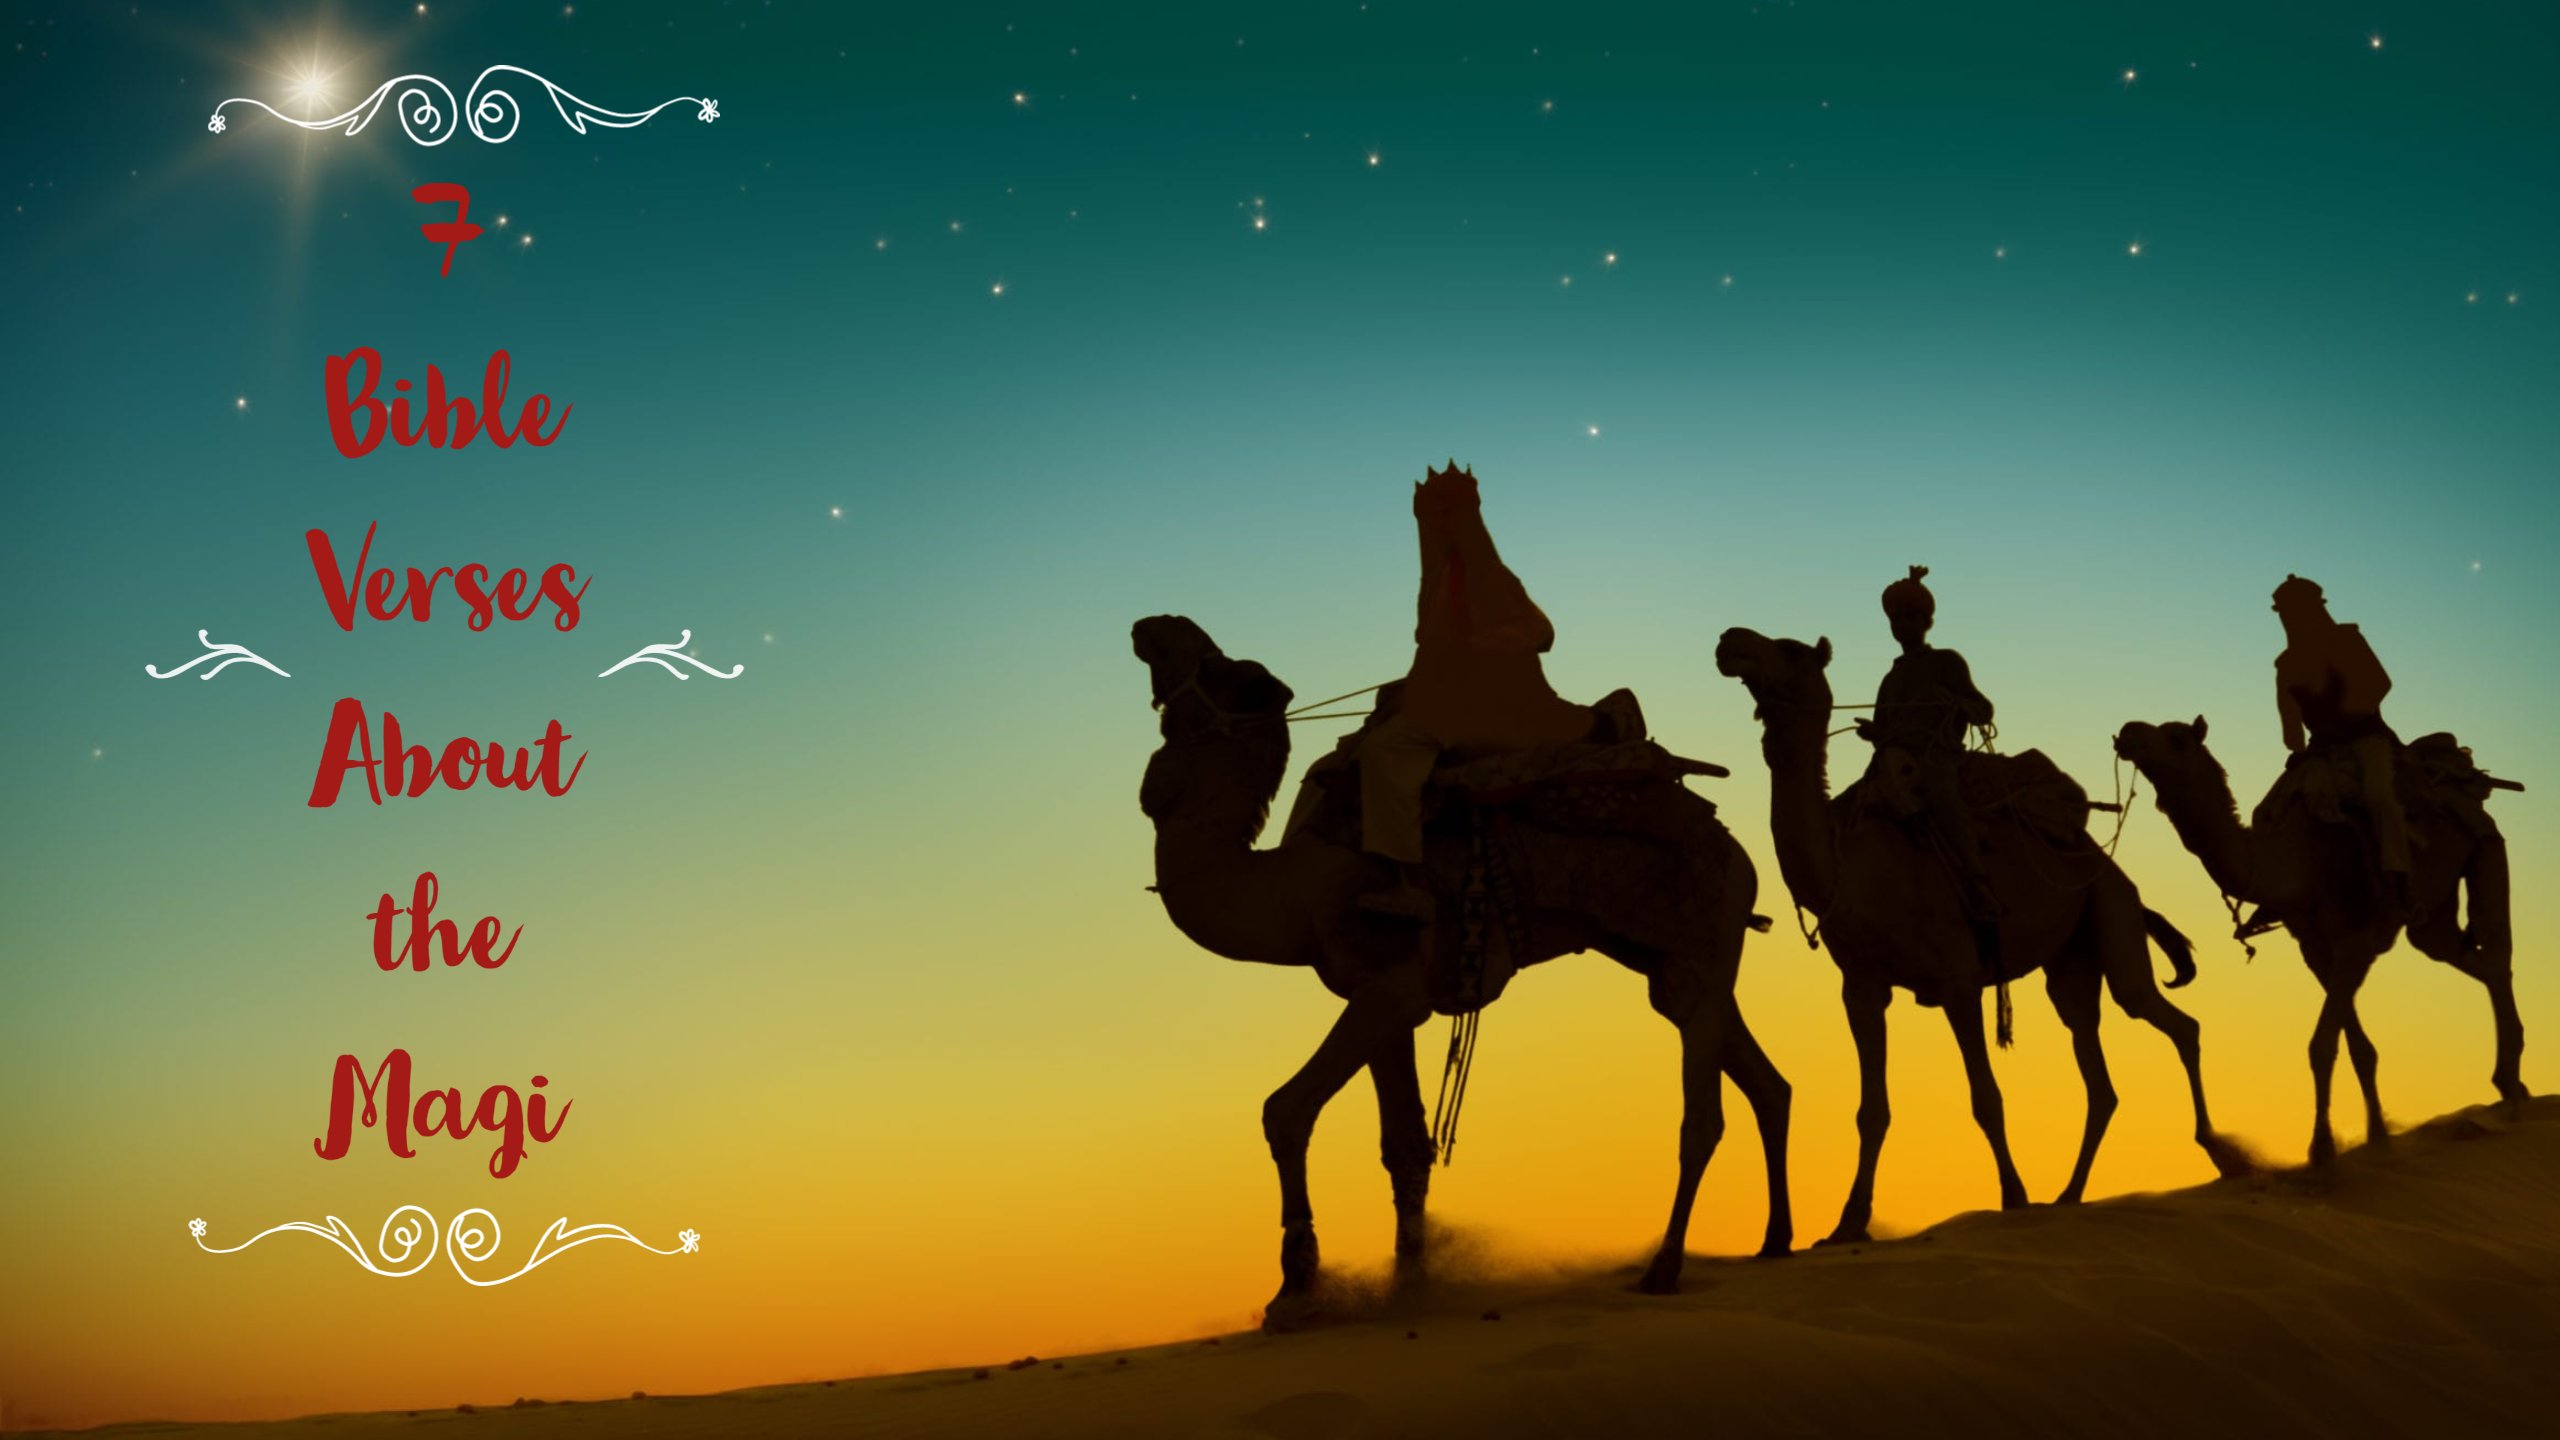 7 Bible Verses About the Magi